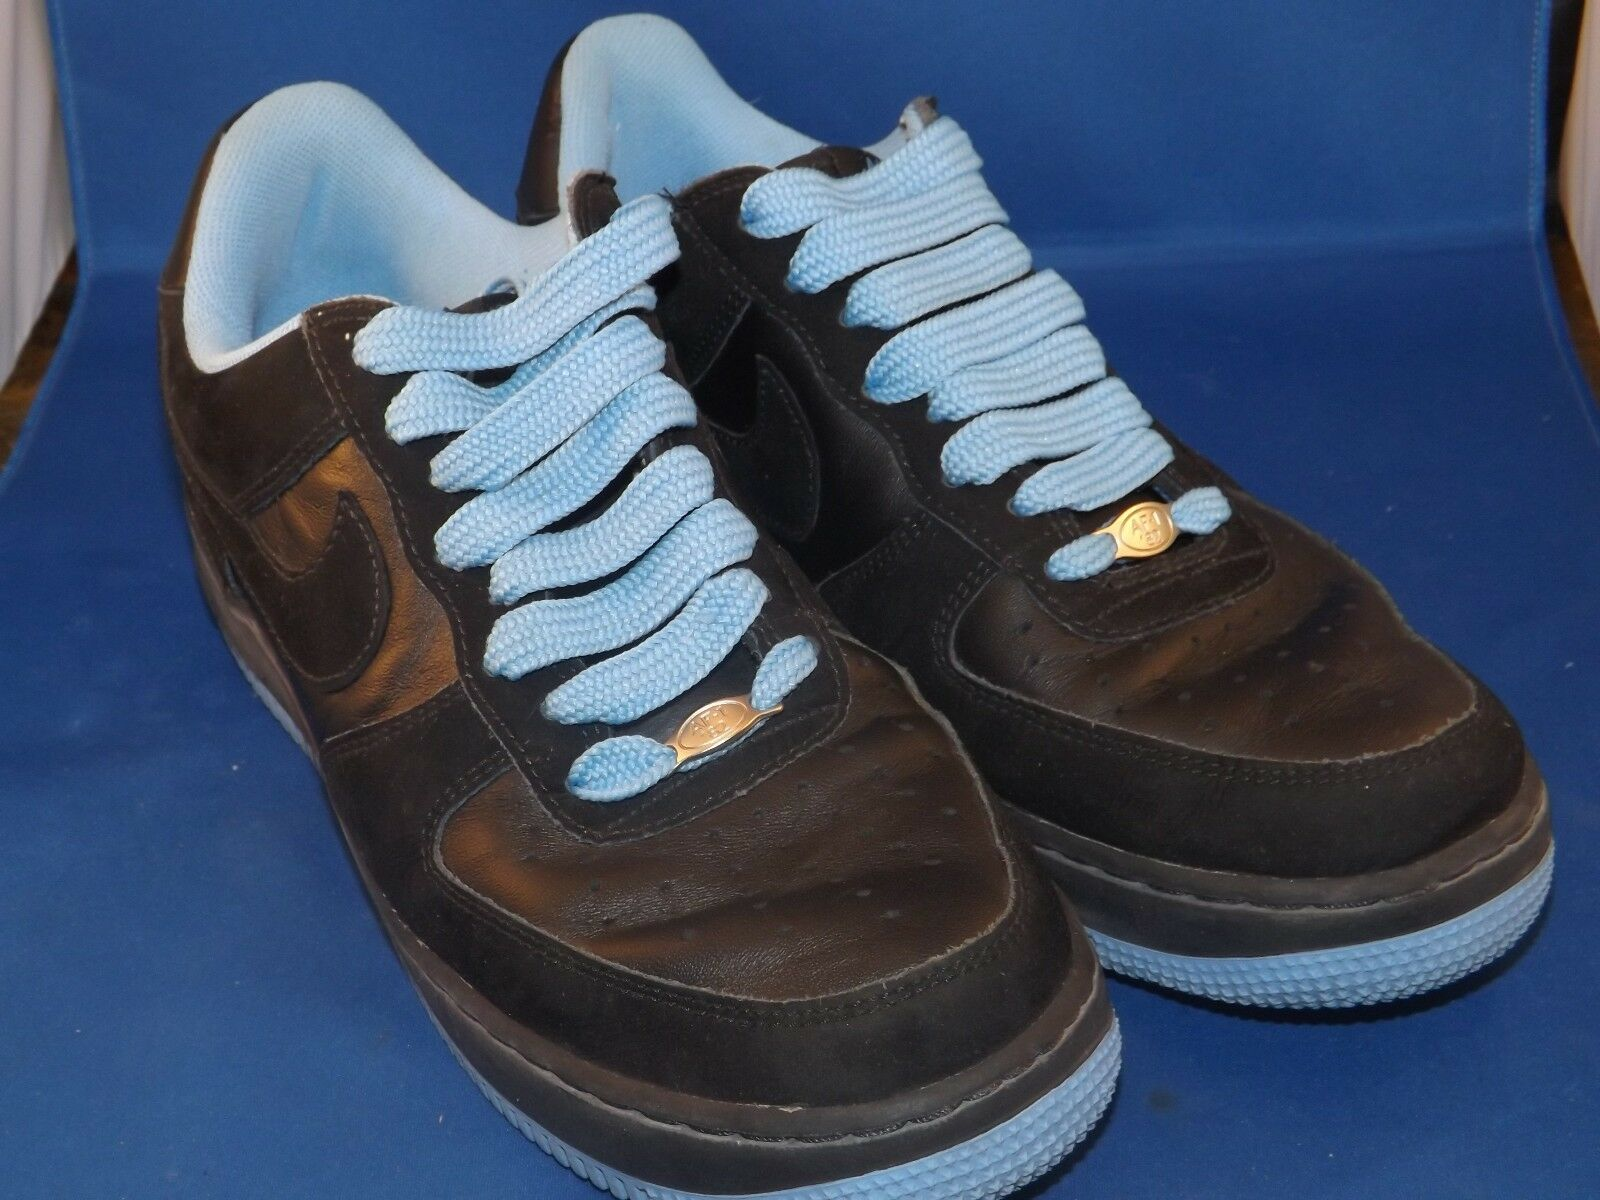 Nike Air Force 1 Blue & Black Shoes 313642-005 Comfortable New shoes for men and women, limited time discount